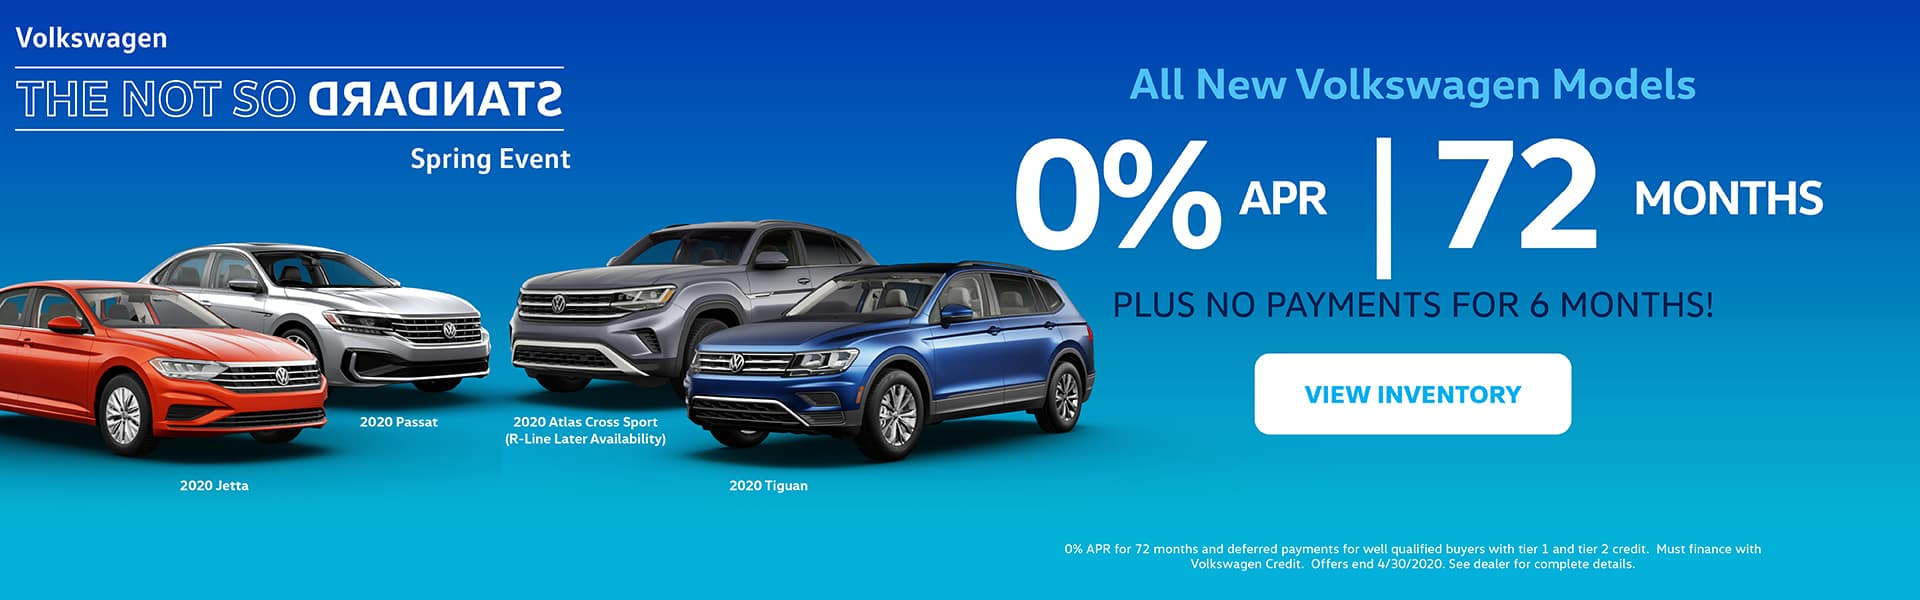 0% APR for 72 Months! PLUS NO PAYMENTS FOR 6 MONTHS!